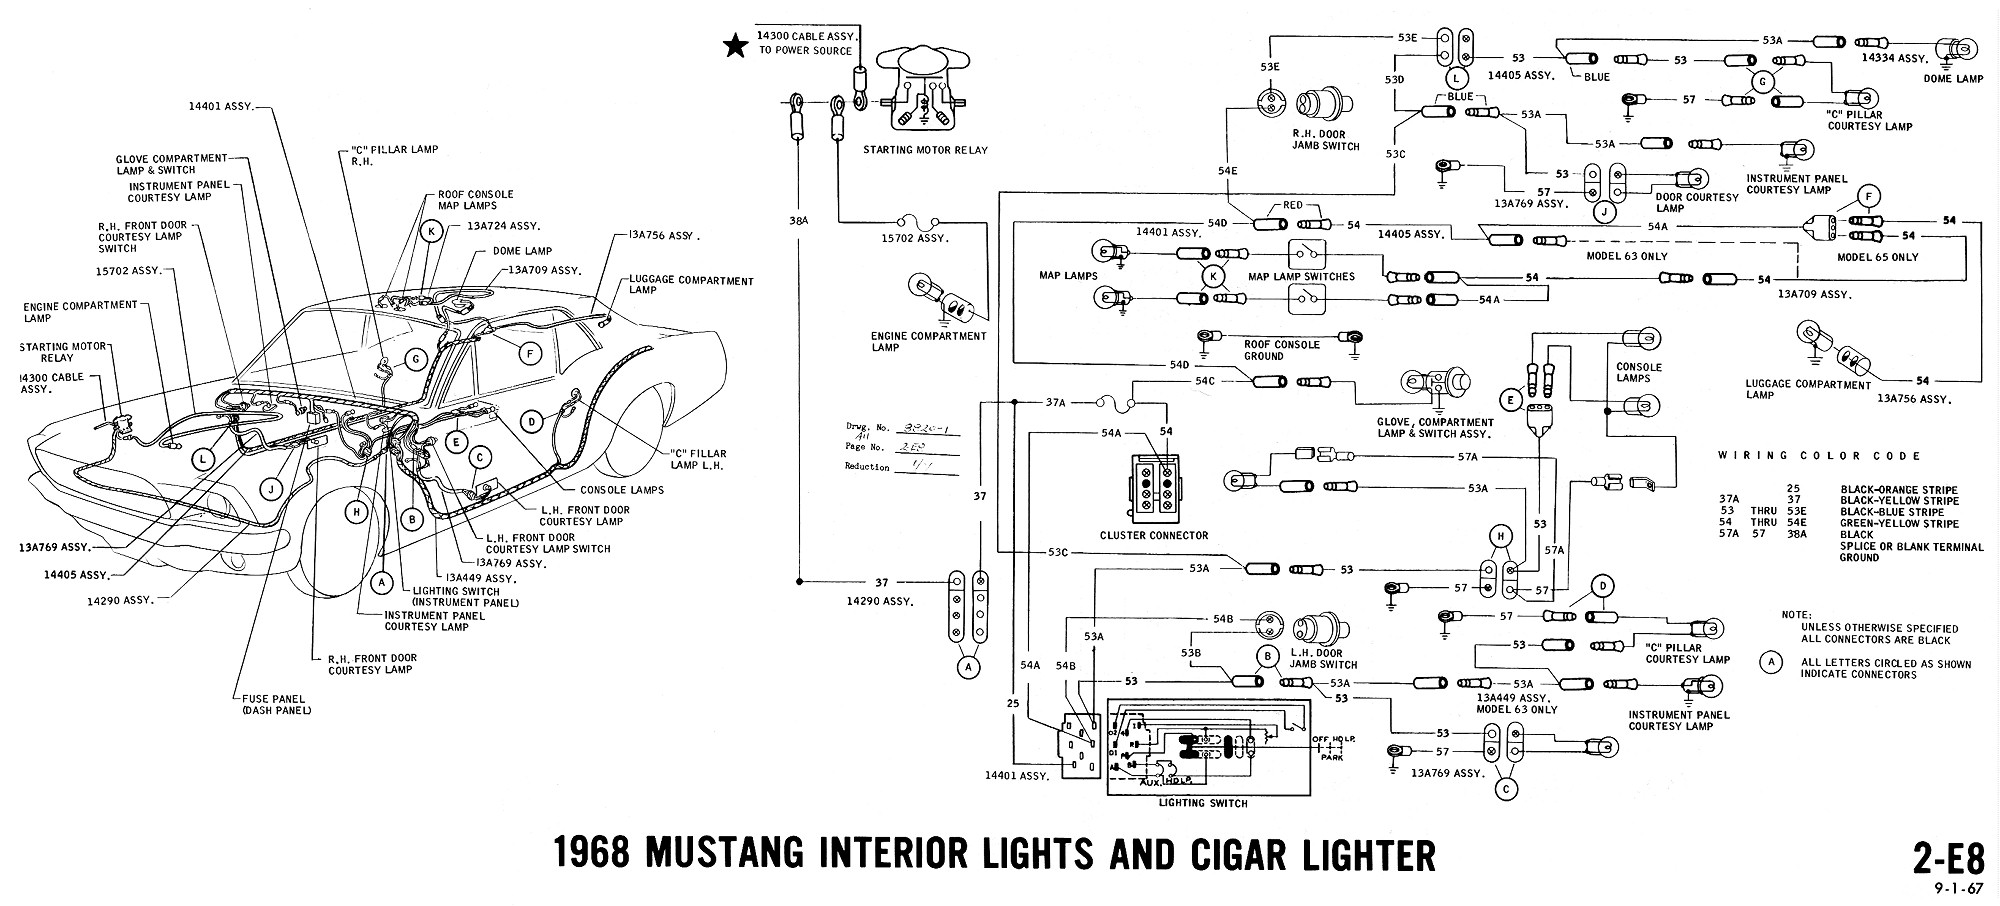 hight resolution of 1968 mustang wiring diagrams evolving software rh peterfranza com 1968 mustang ignition switch diagram 1968 mustang